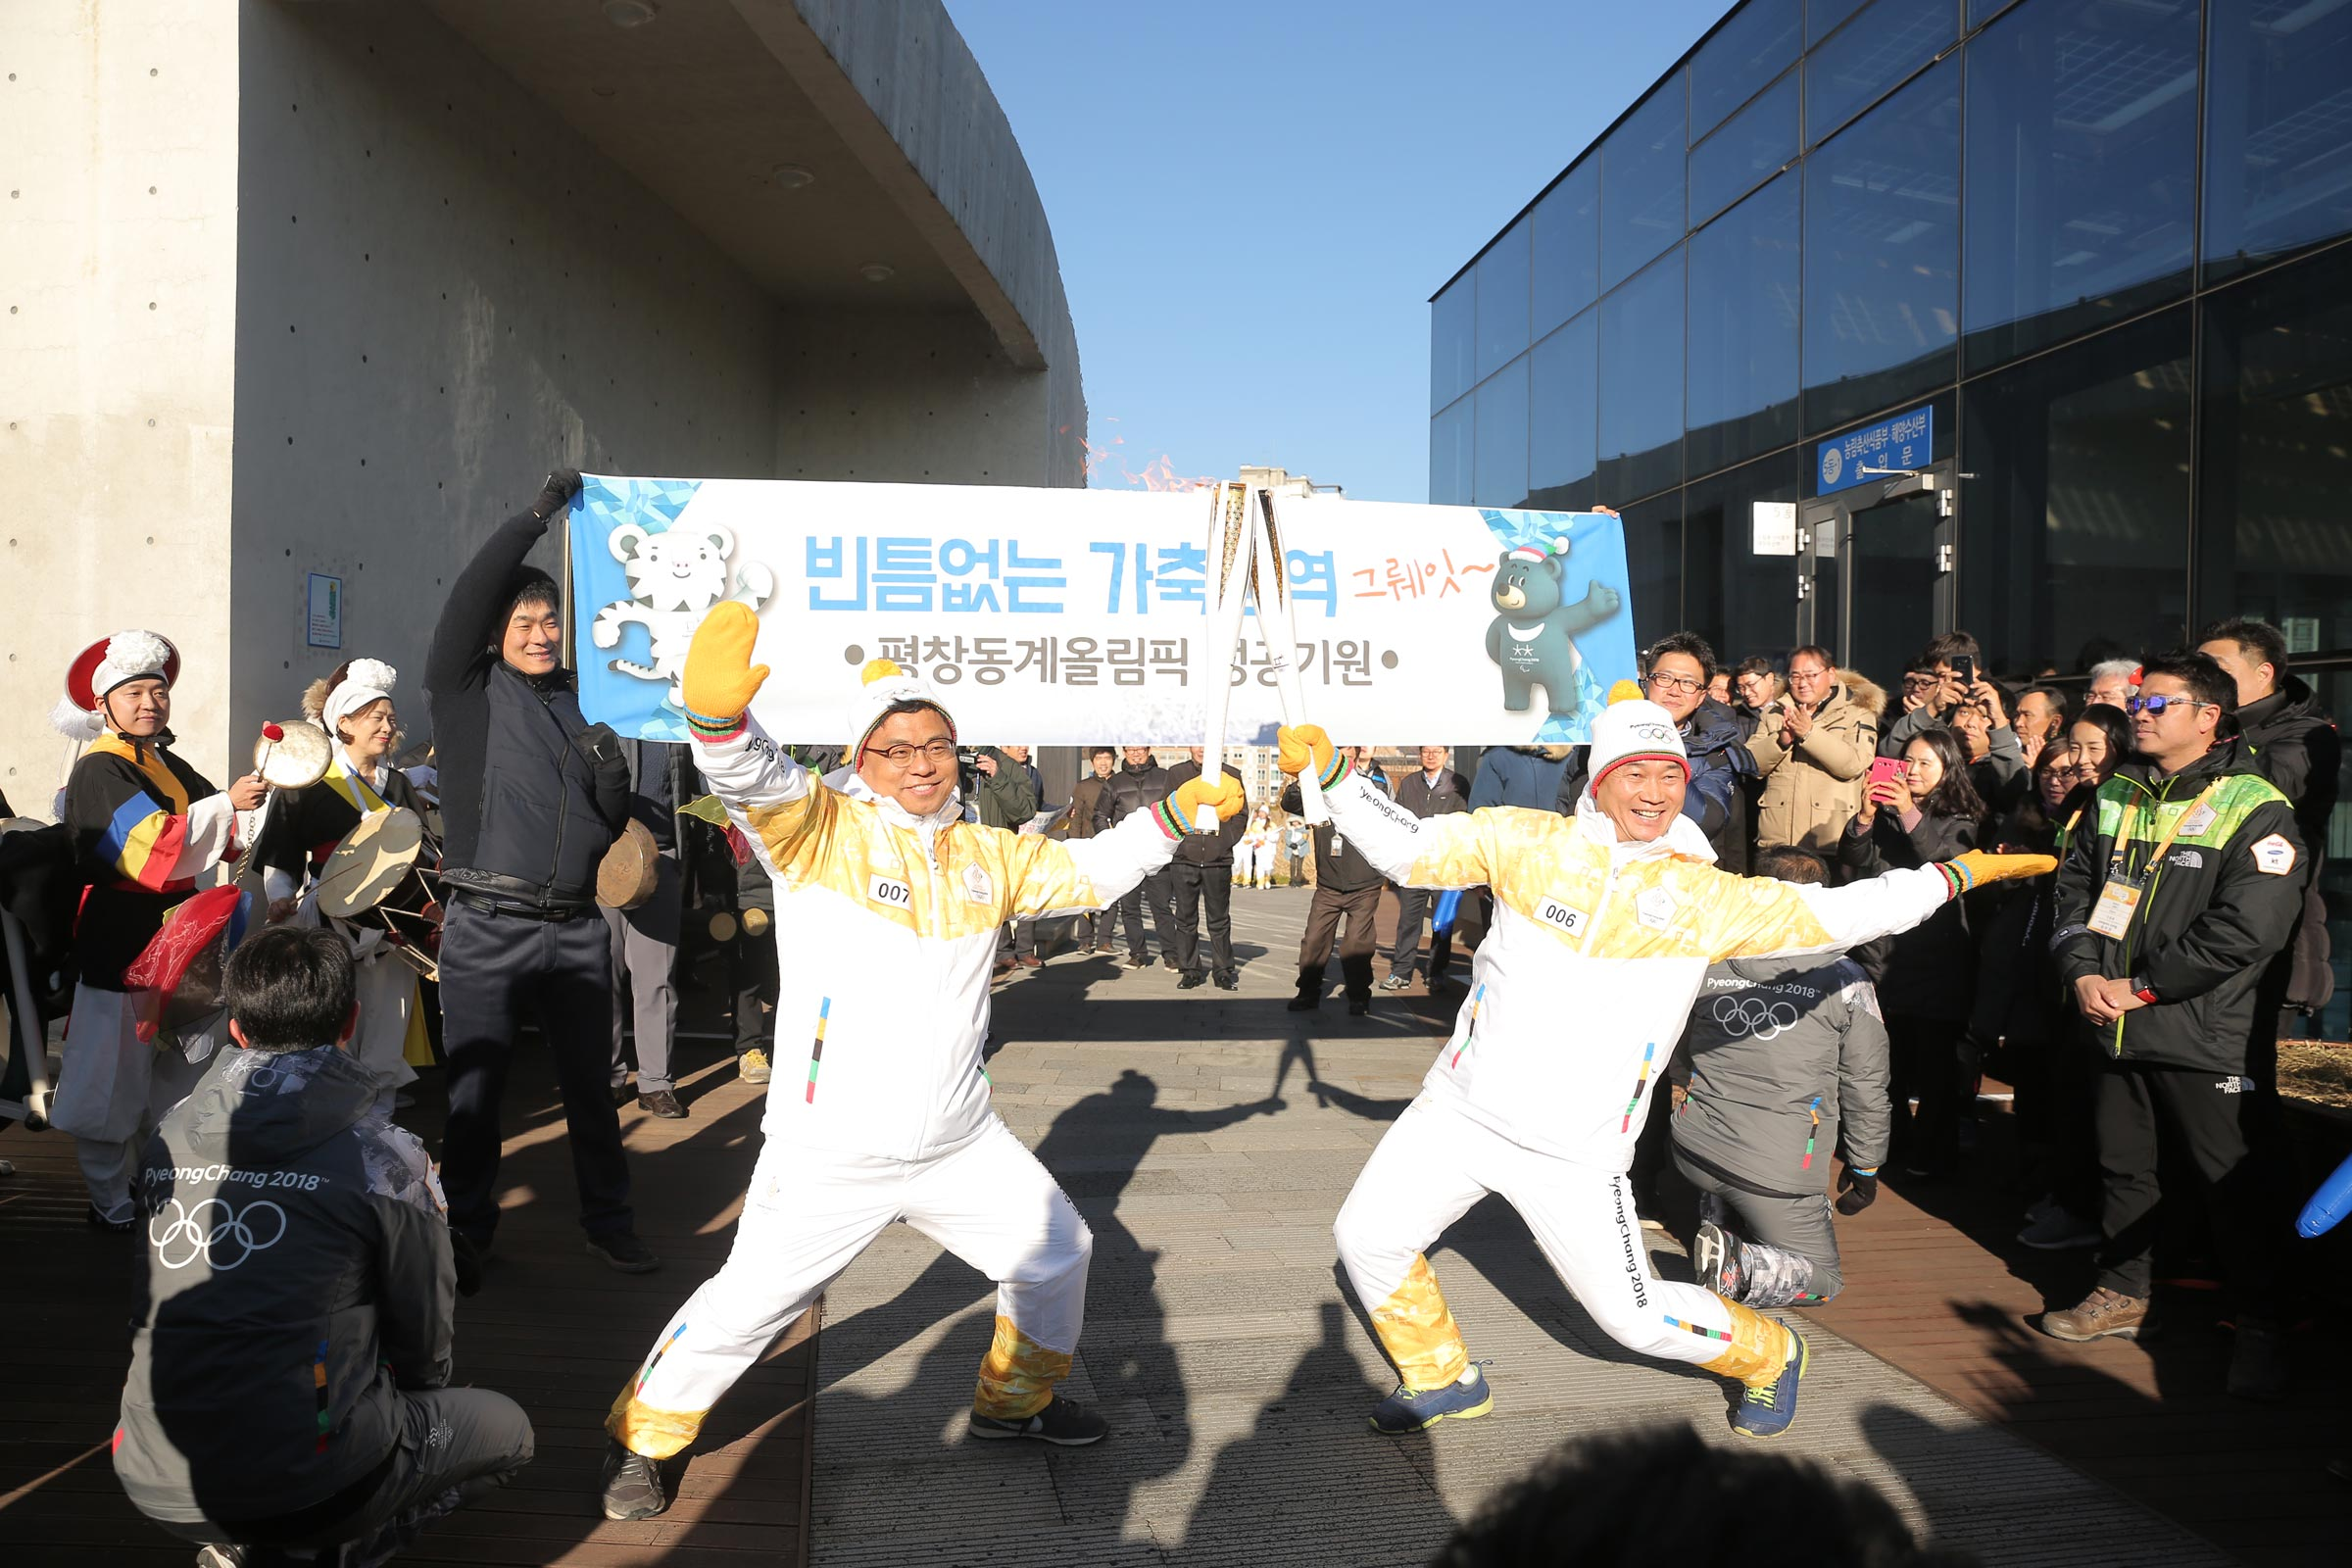 PyeongChang 2018 Olympic Torch Relay - Day 43